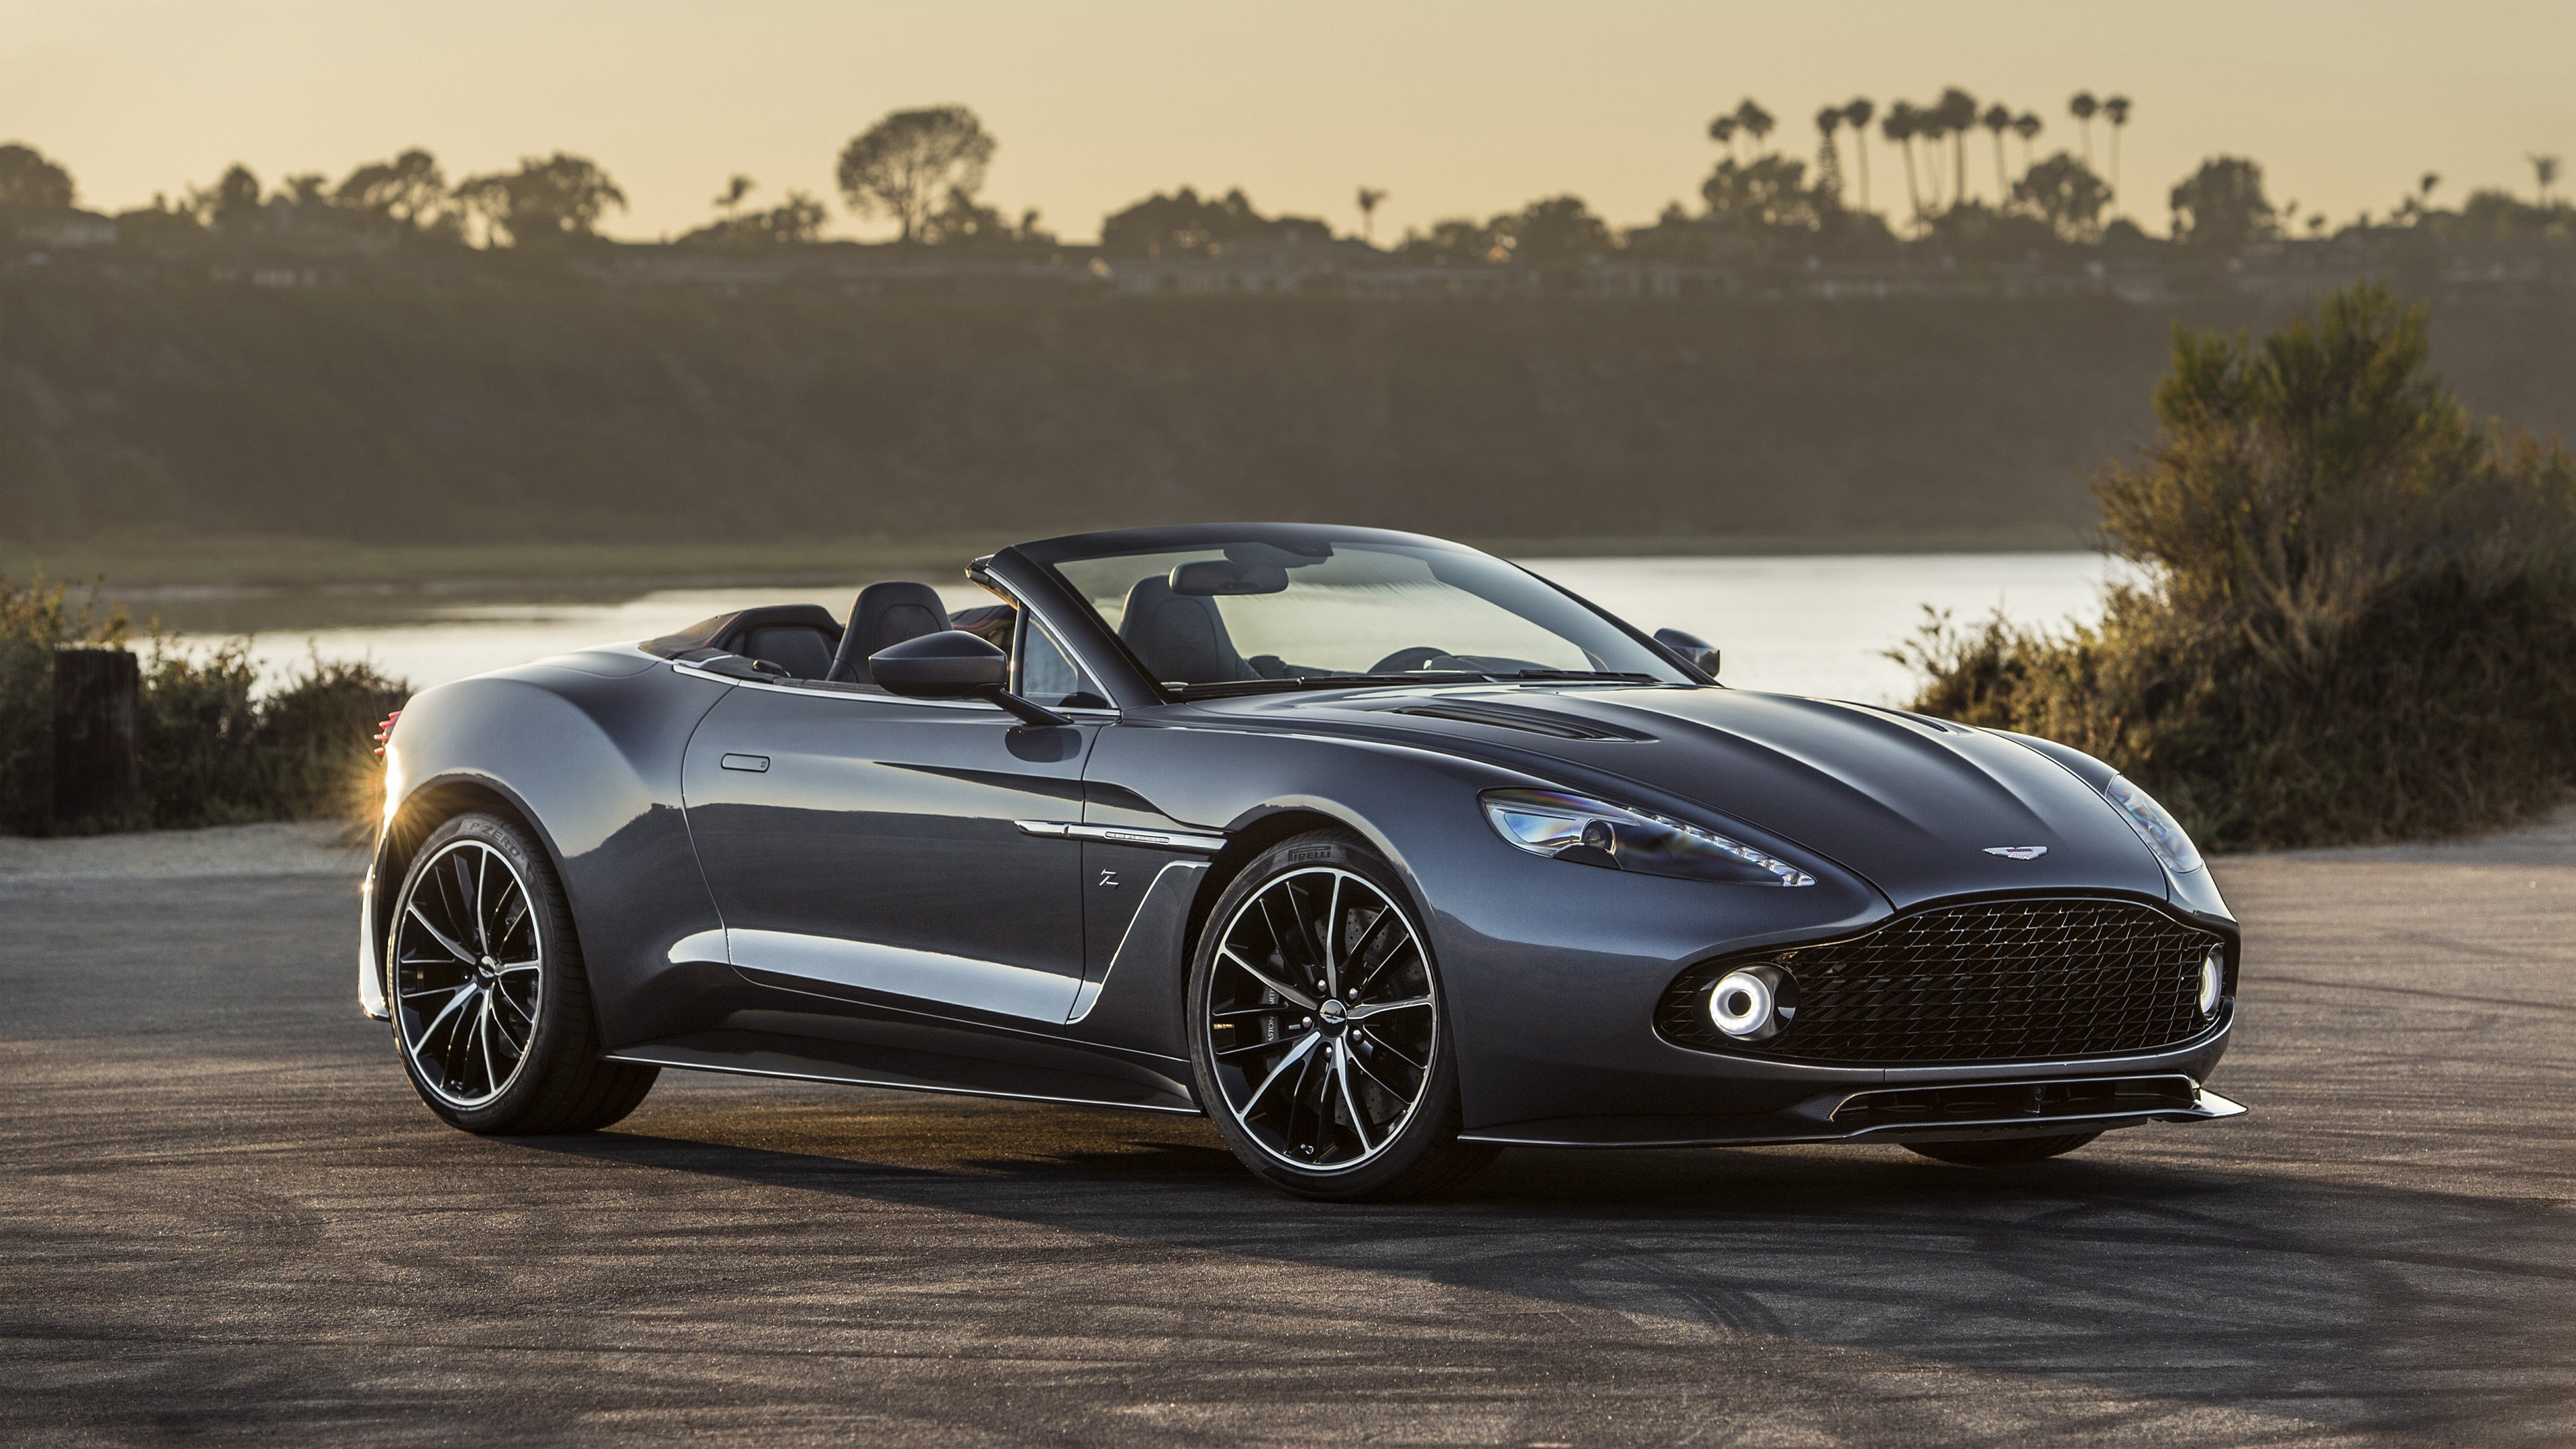 Latest Aston Martin Vanquish Zagato Volante 2017 4K Wallpapers Free Download